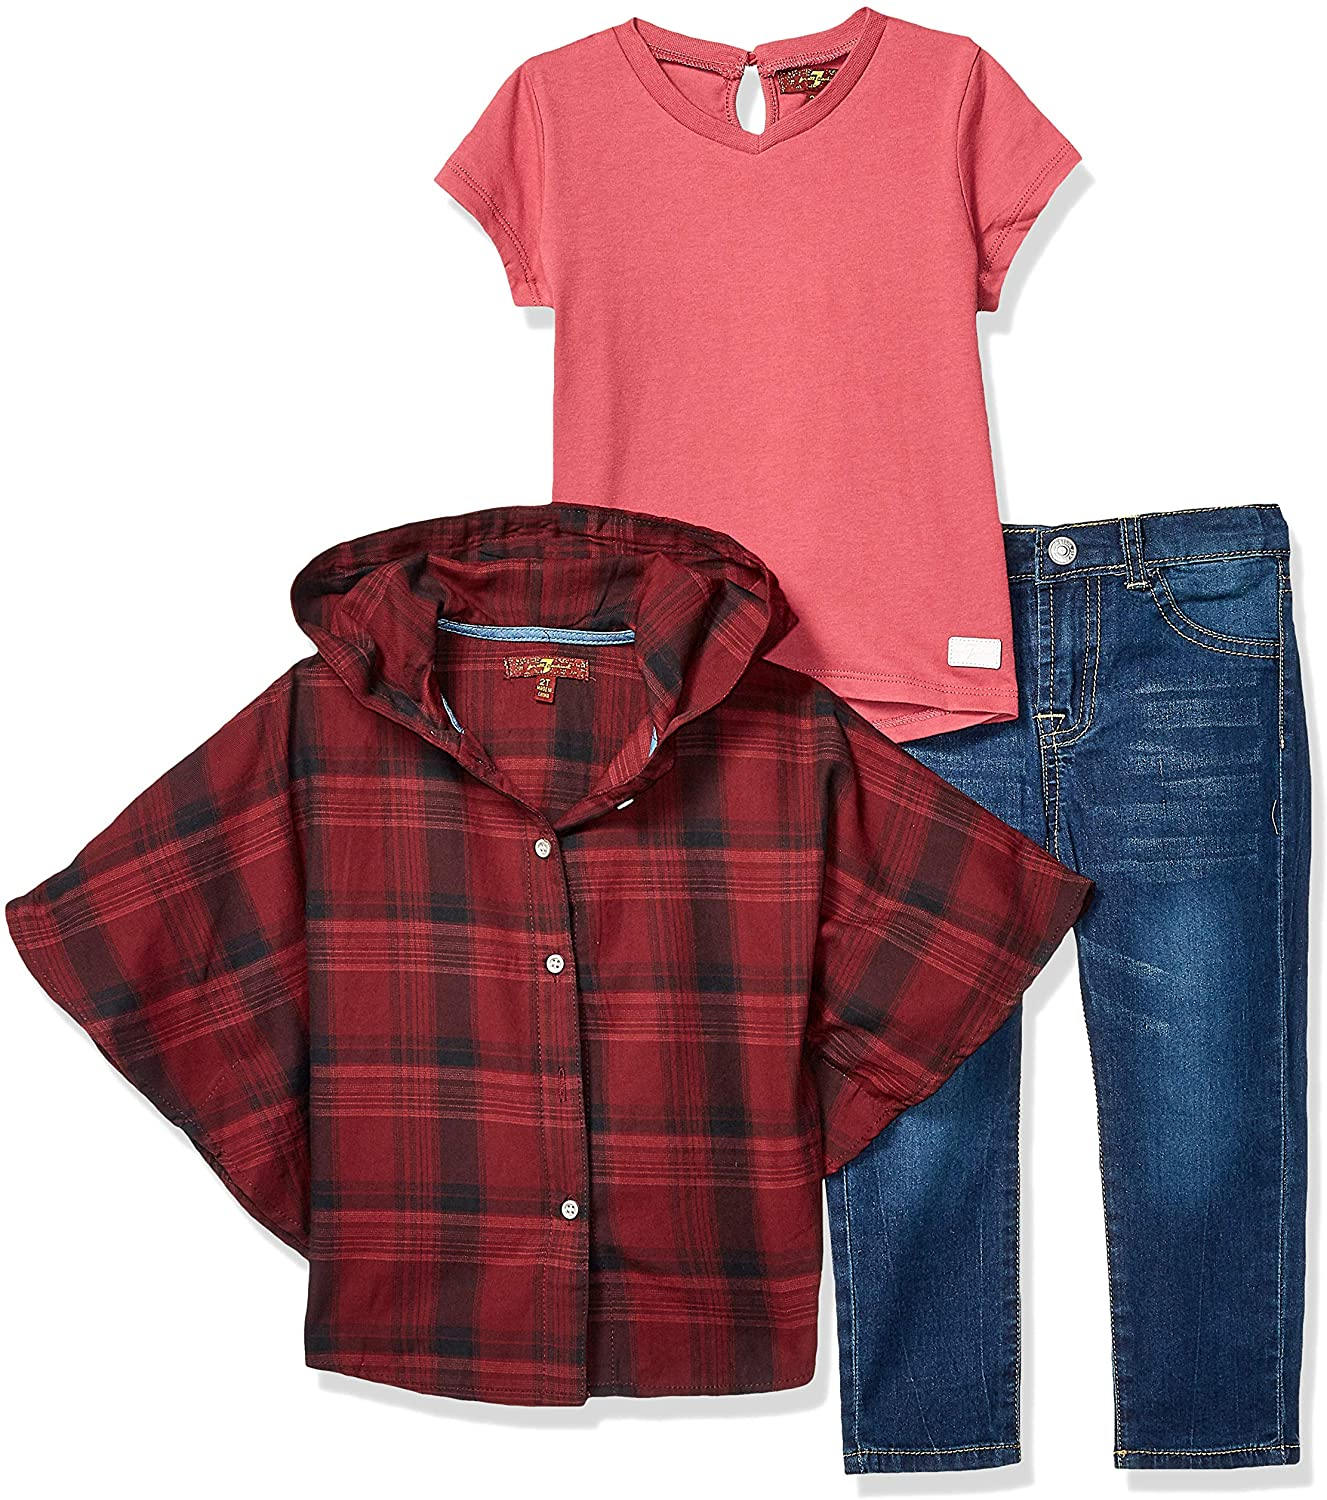 7 For All Mankind Girls' Toddler 3 Piece Poncho, T-Shirt and Jeans Set